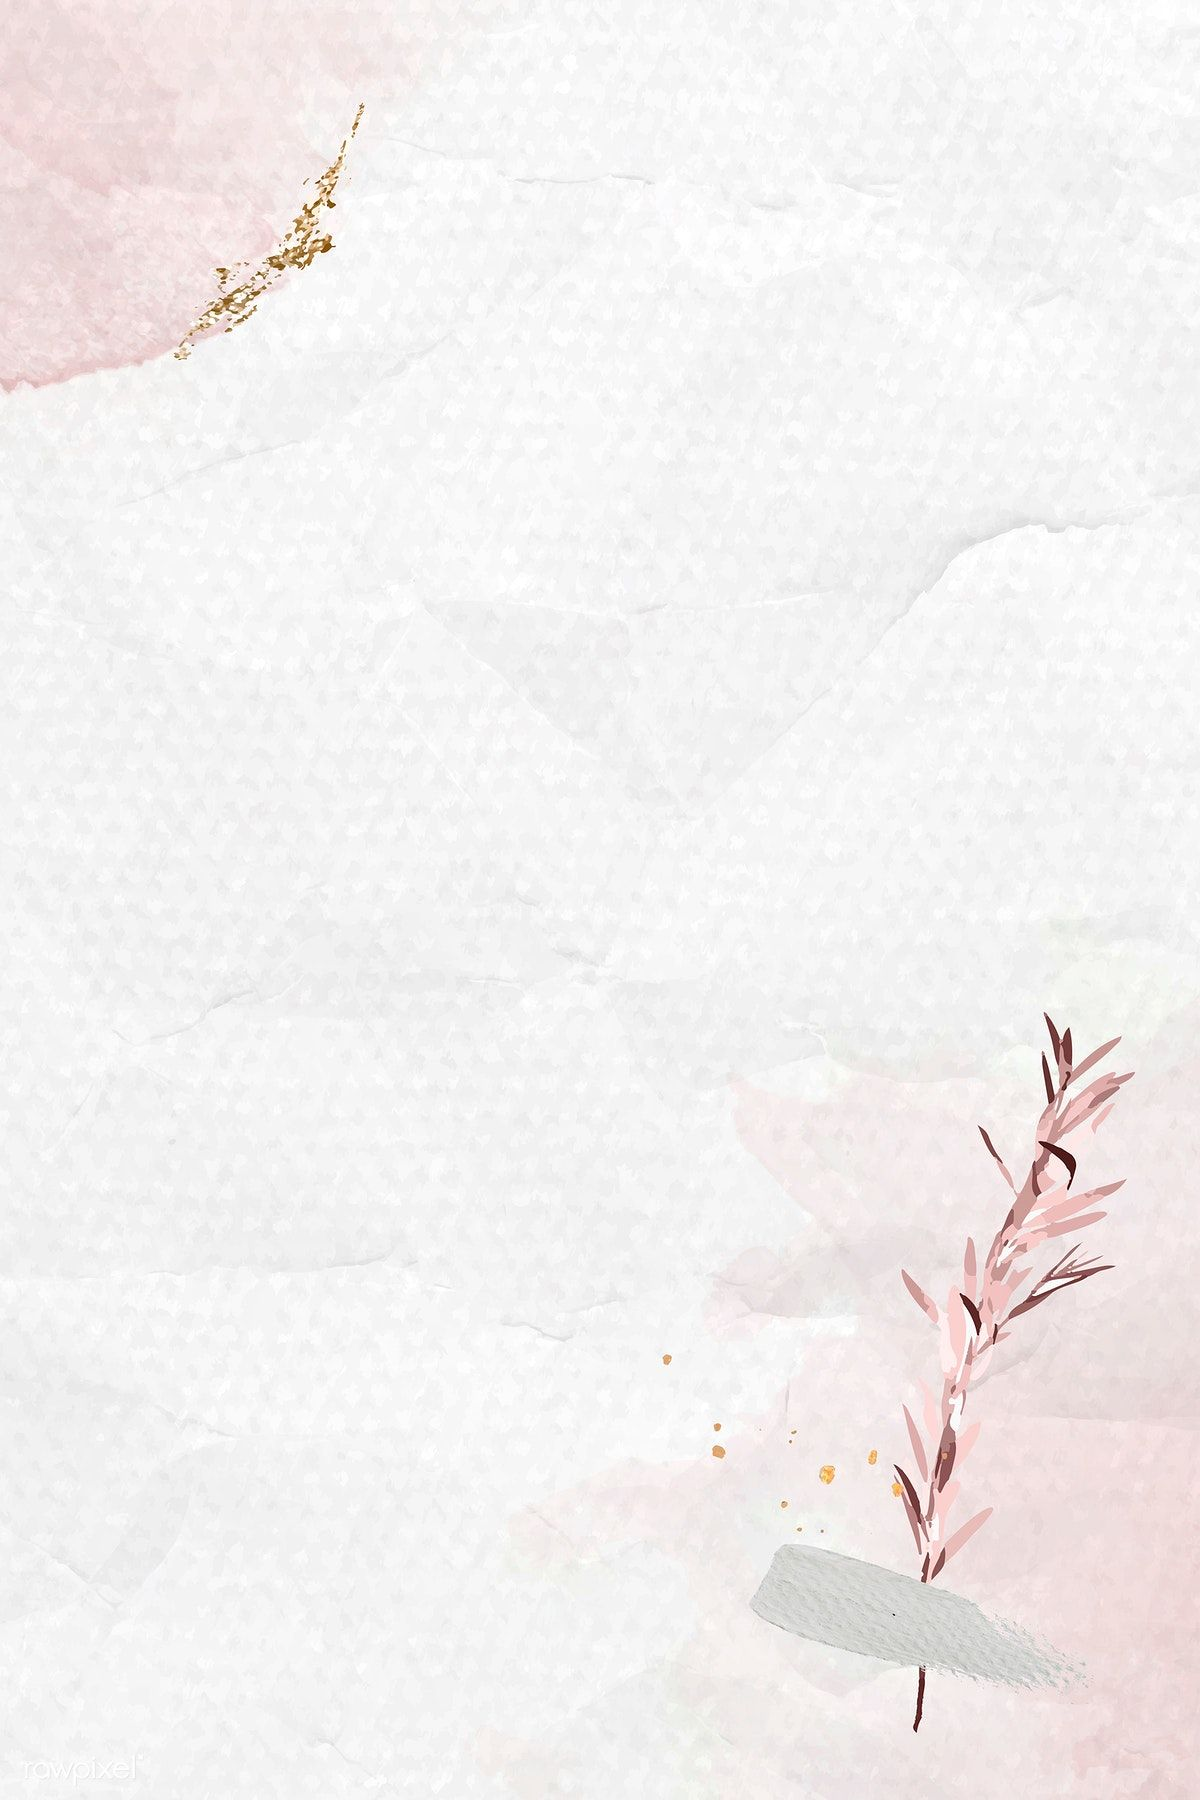 Download premium vector of Eucalyptus pattern on crumpled background template vector by Nunny about background, wallpaper, paper, texture, and pink 1216304